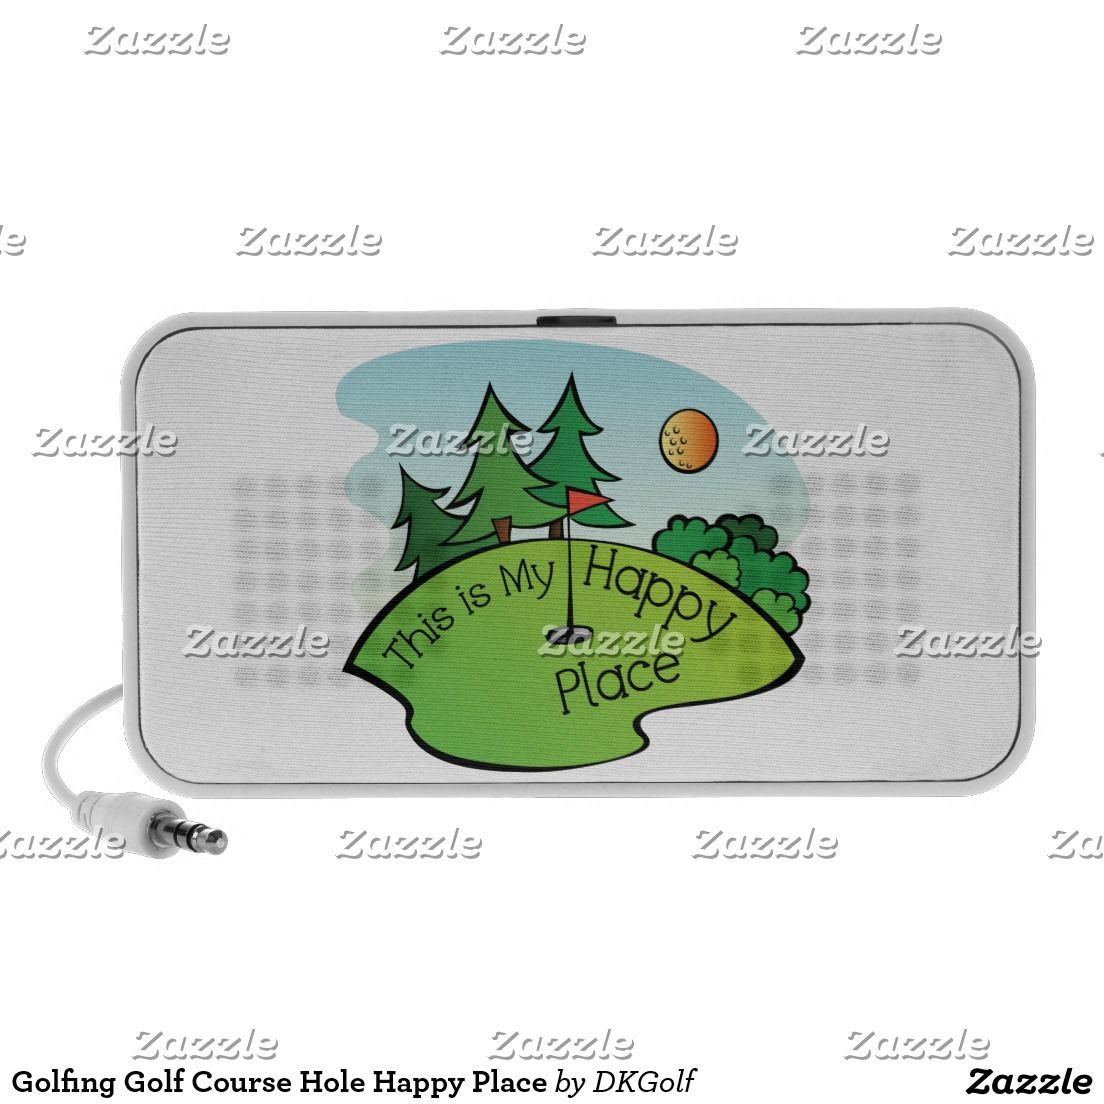 Golfing Golf Course Hole Happy Place Mp3 Speakers Dkgolf Diagram